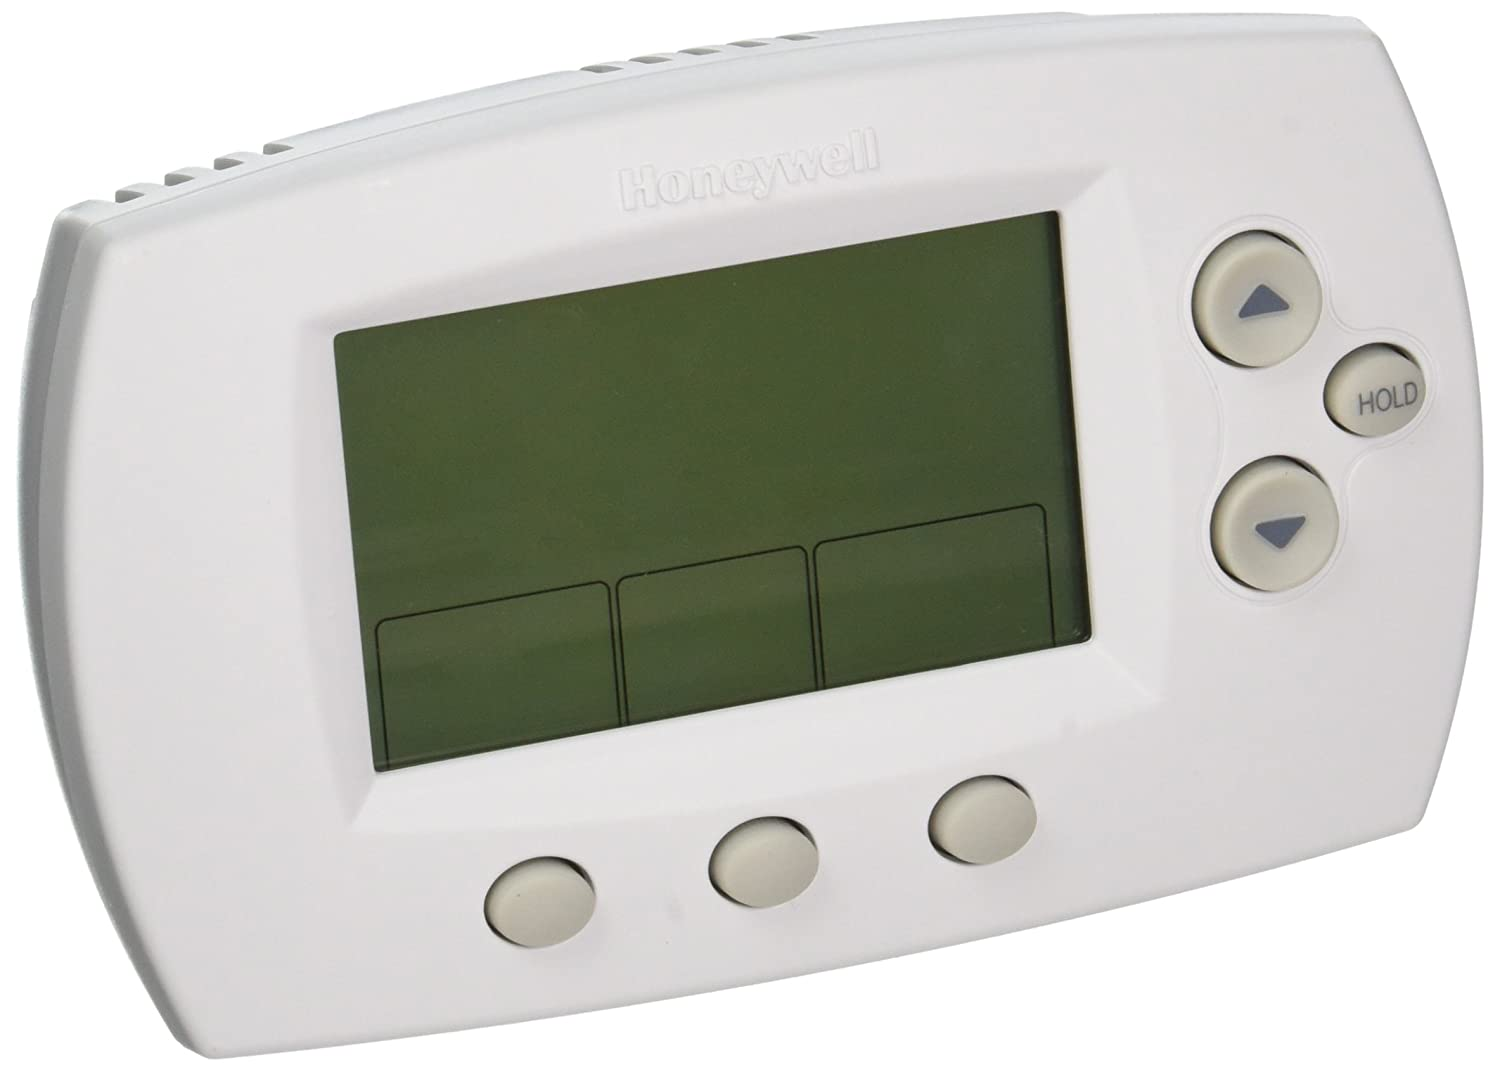 hight resolution of honeywell thermostat rth6350 wiring diagram